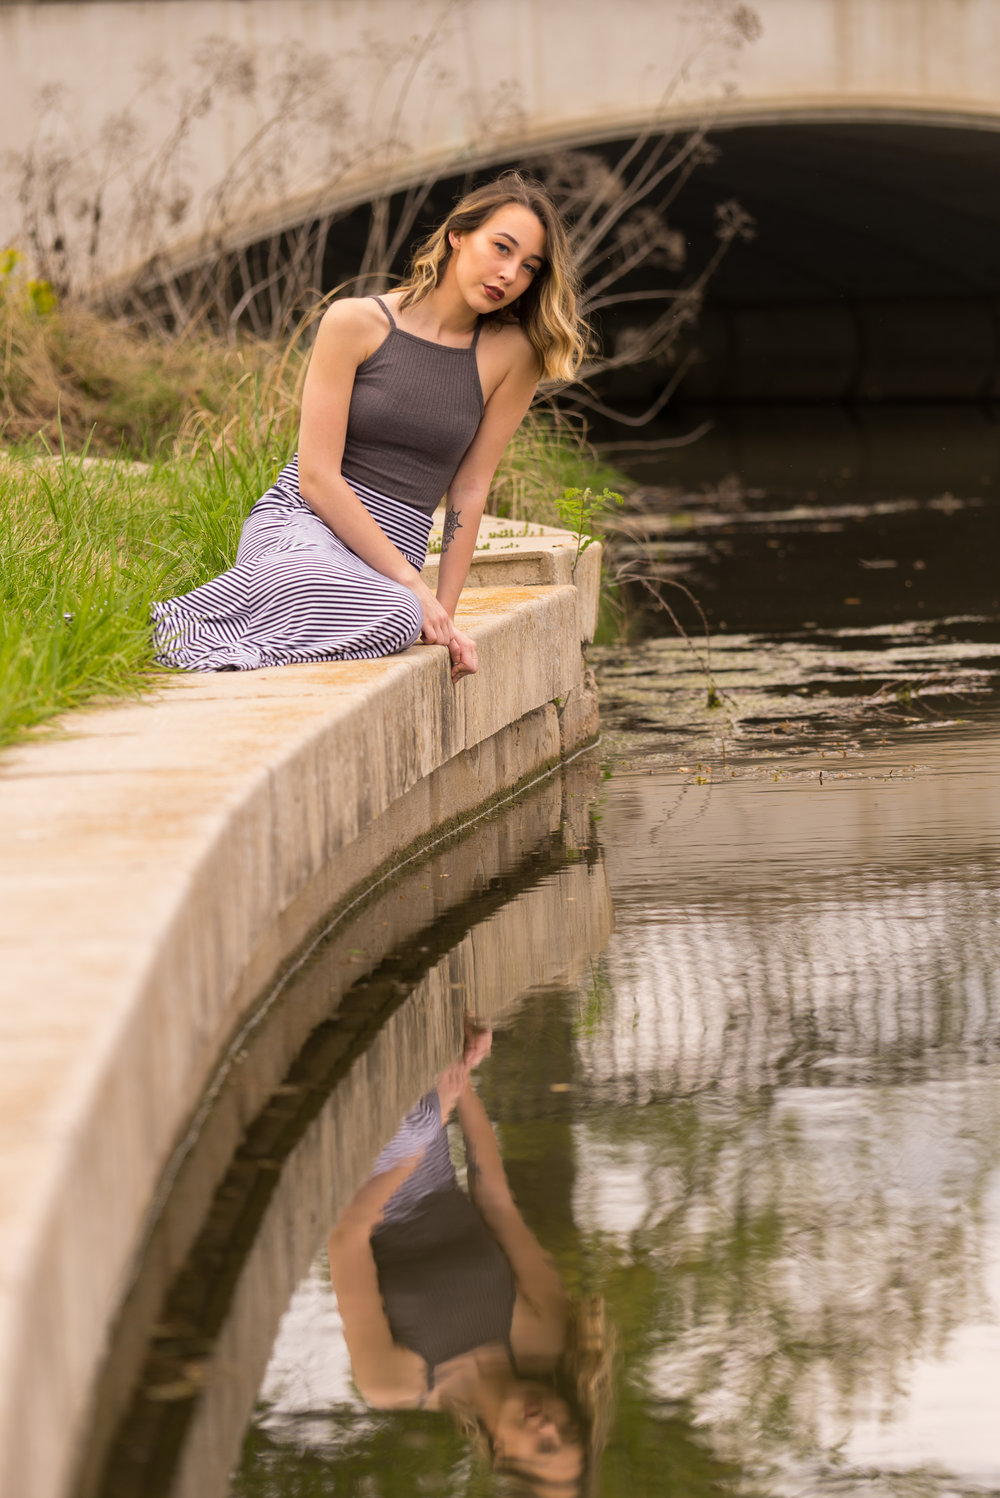 senior with lake reflection - Bay area portraits